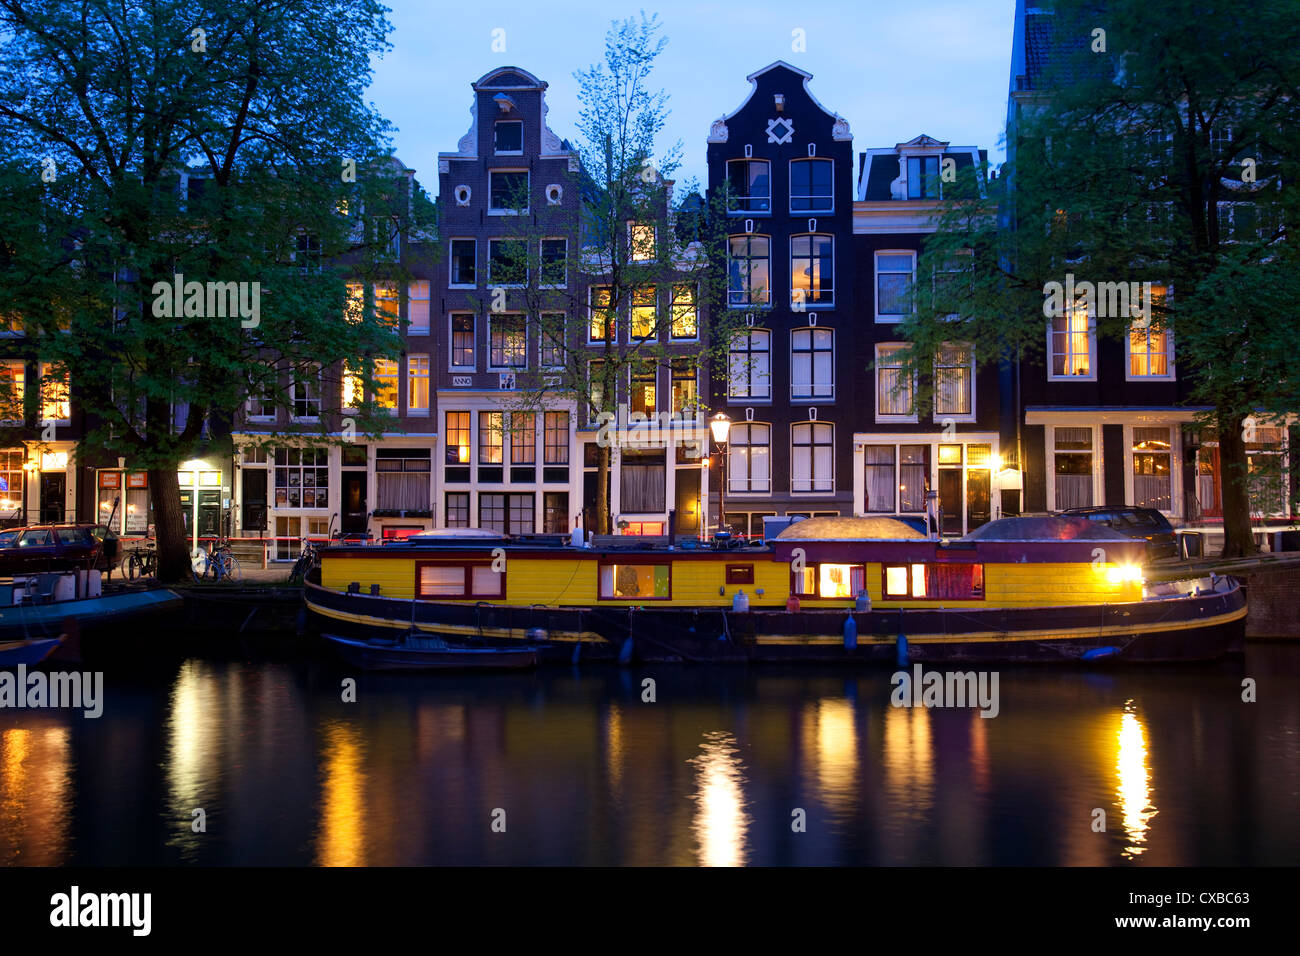 Canal boat and architecture, Amsterdam, Holland, Europe - Stock Image